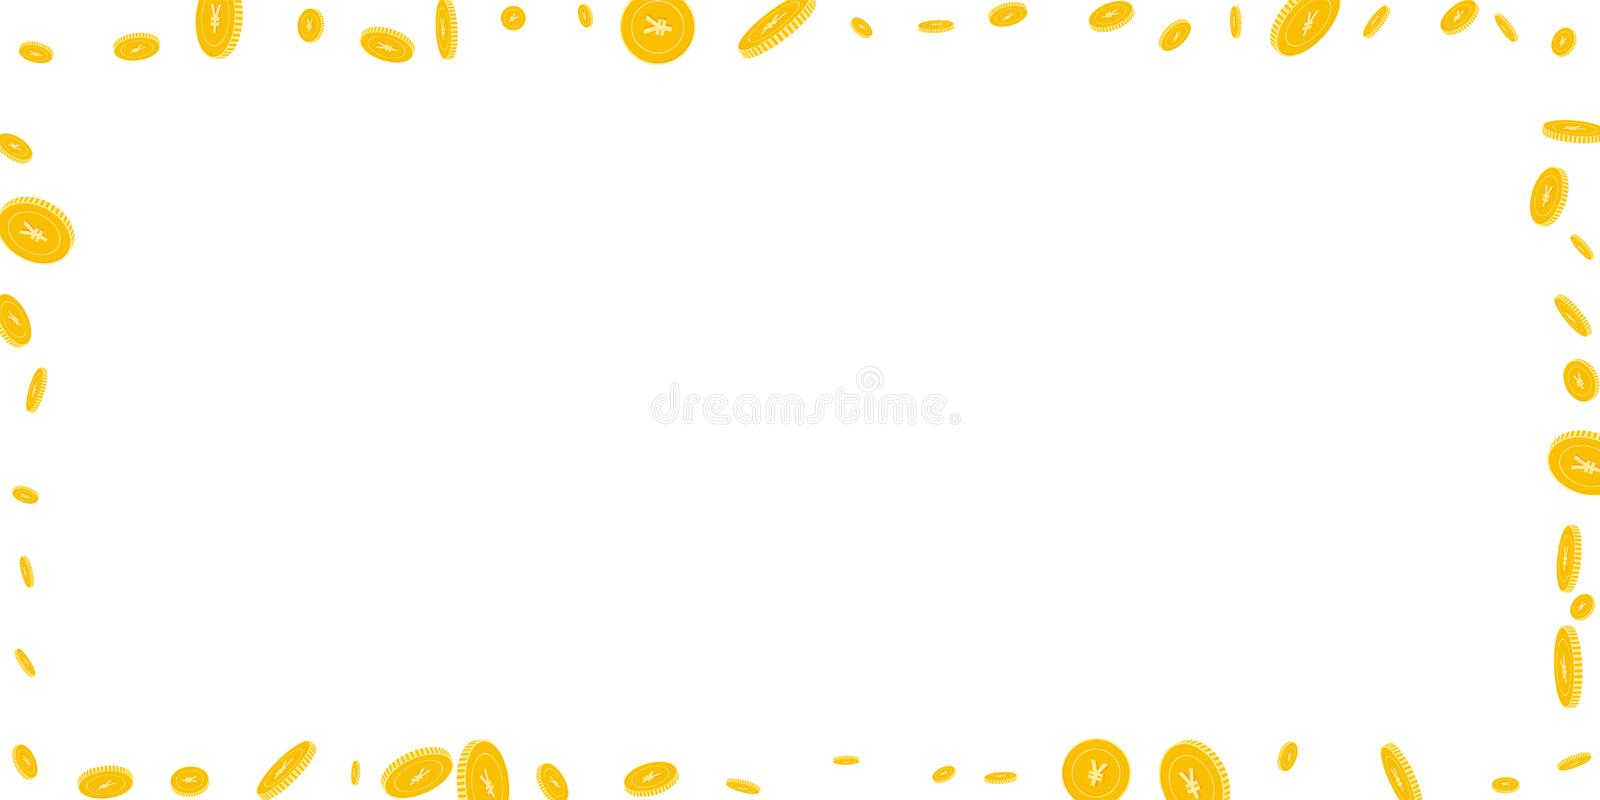 Chinese yuan coins falling. Scattered disorderly C. NY coins on white background. Extraordinary wide frame vector illustration. Jackpot or success concept vector illustration